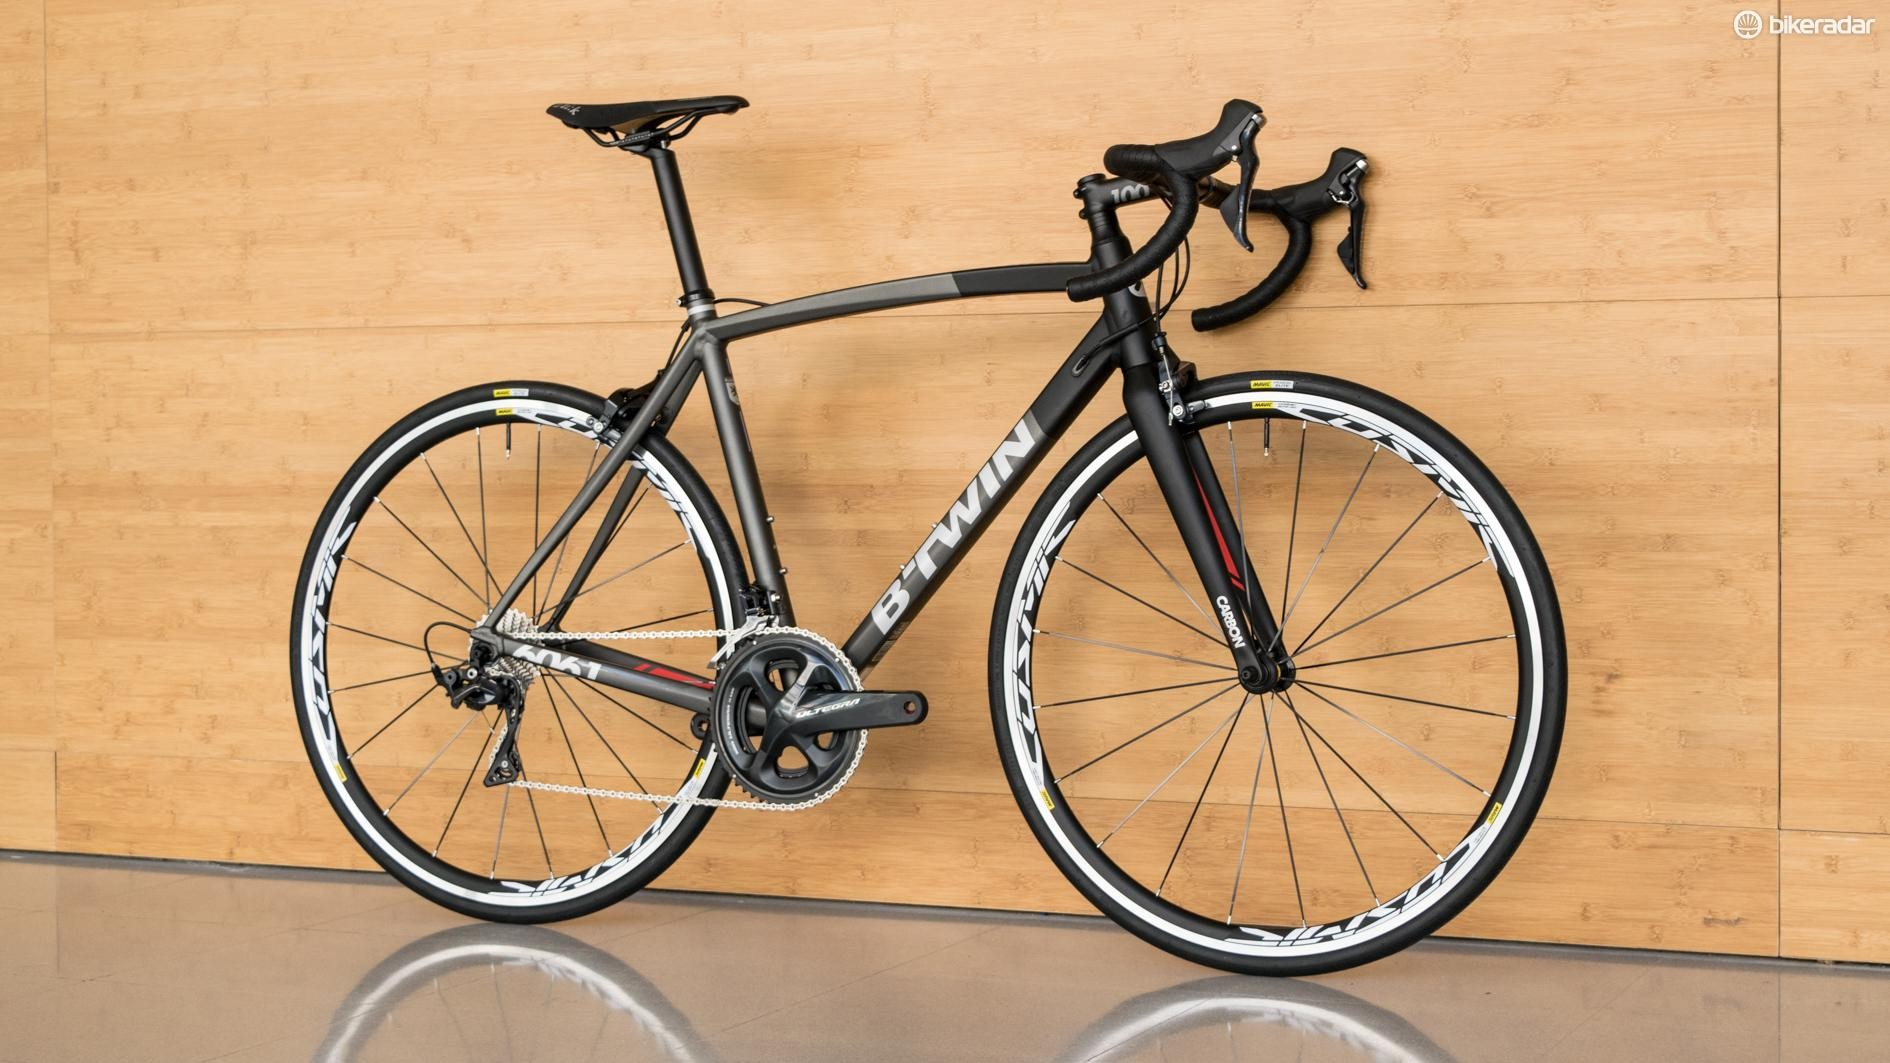 The latest version of the Ultra 920 AF alloy racer costs a bit more, but offers a very appealing spec